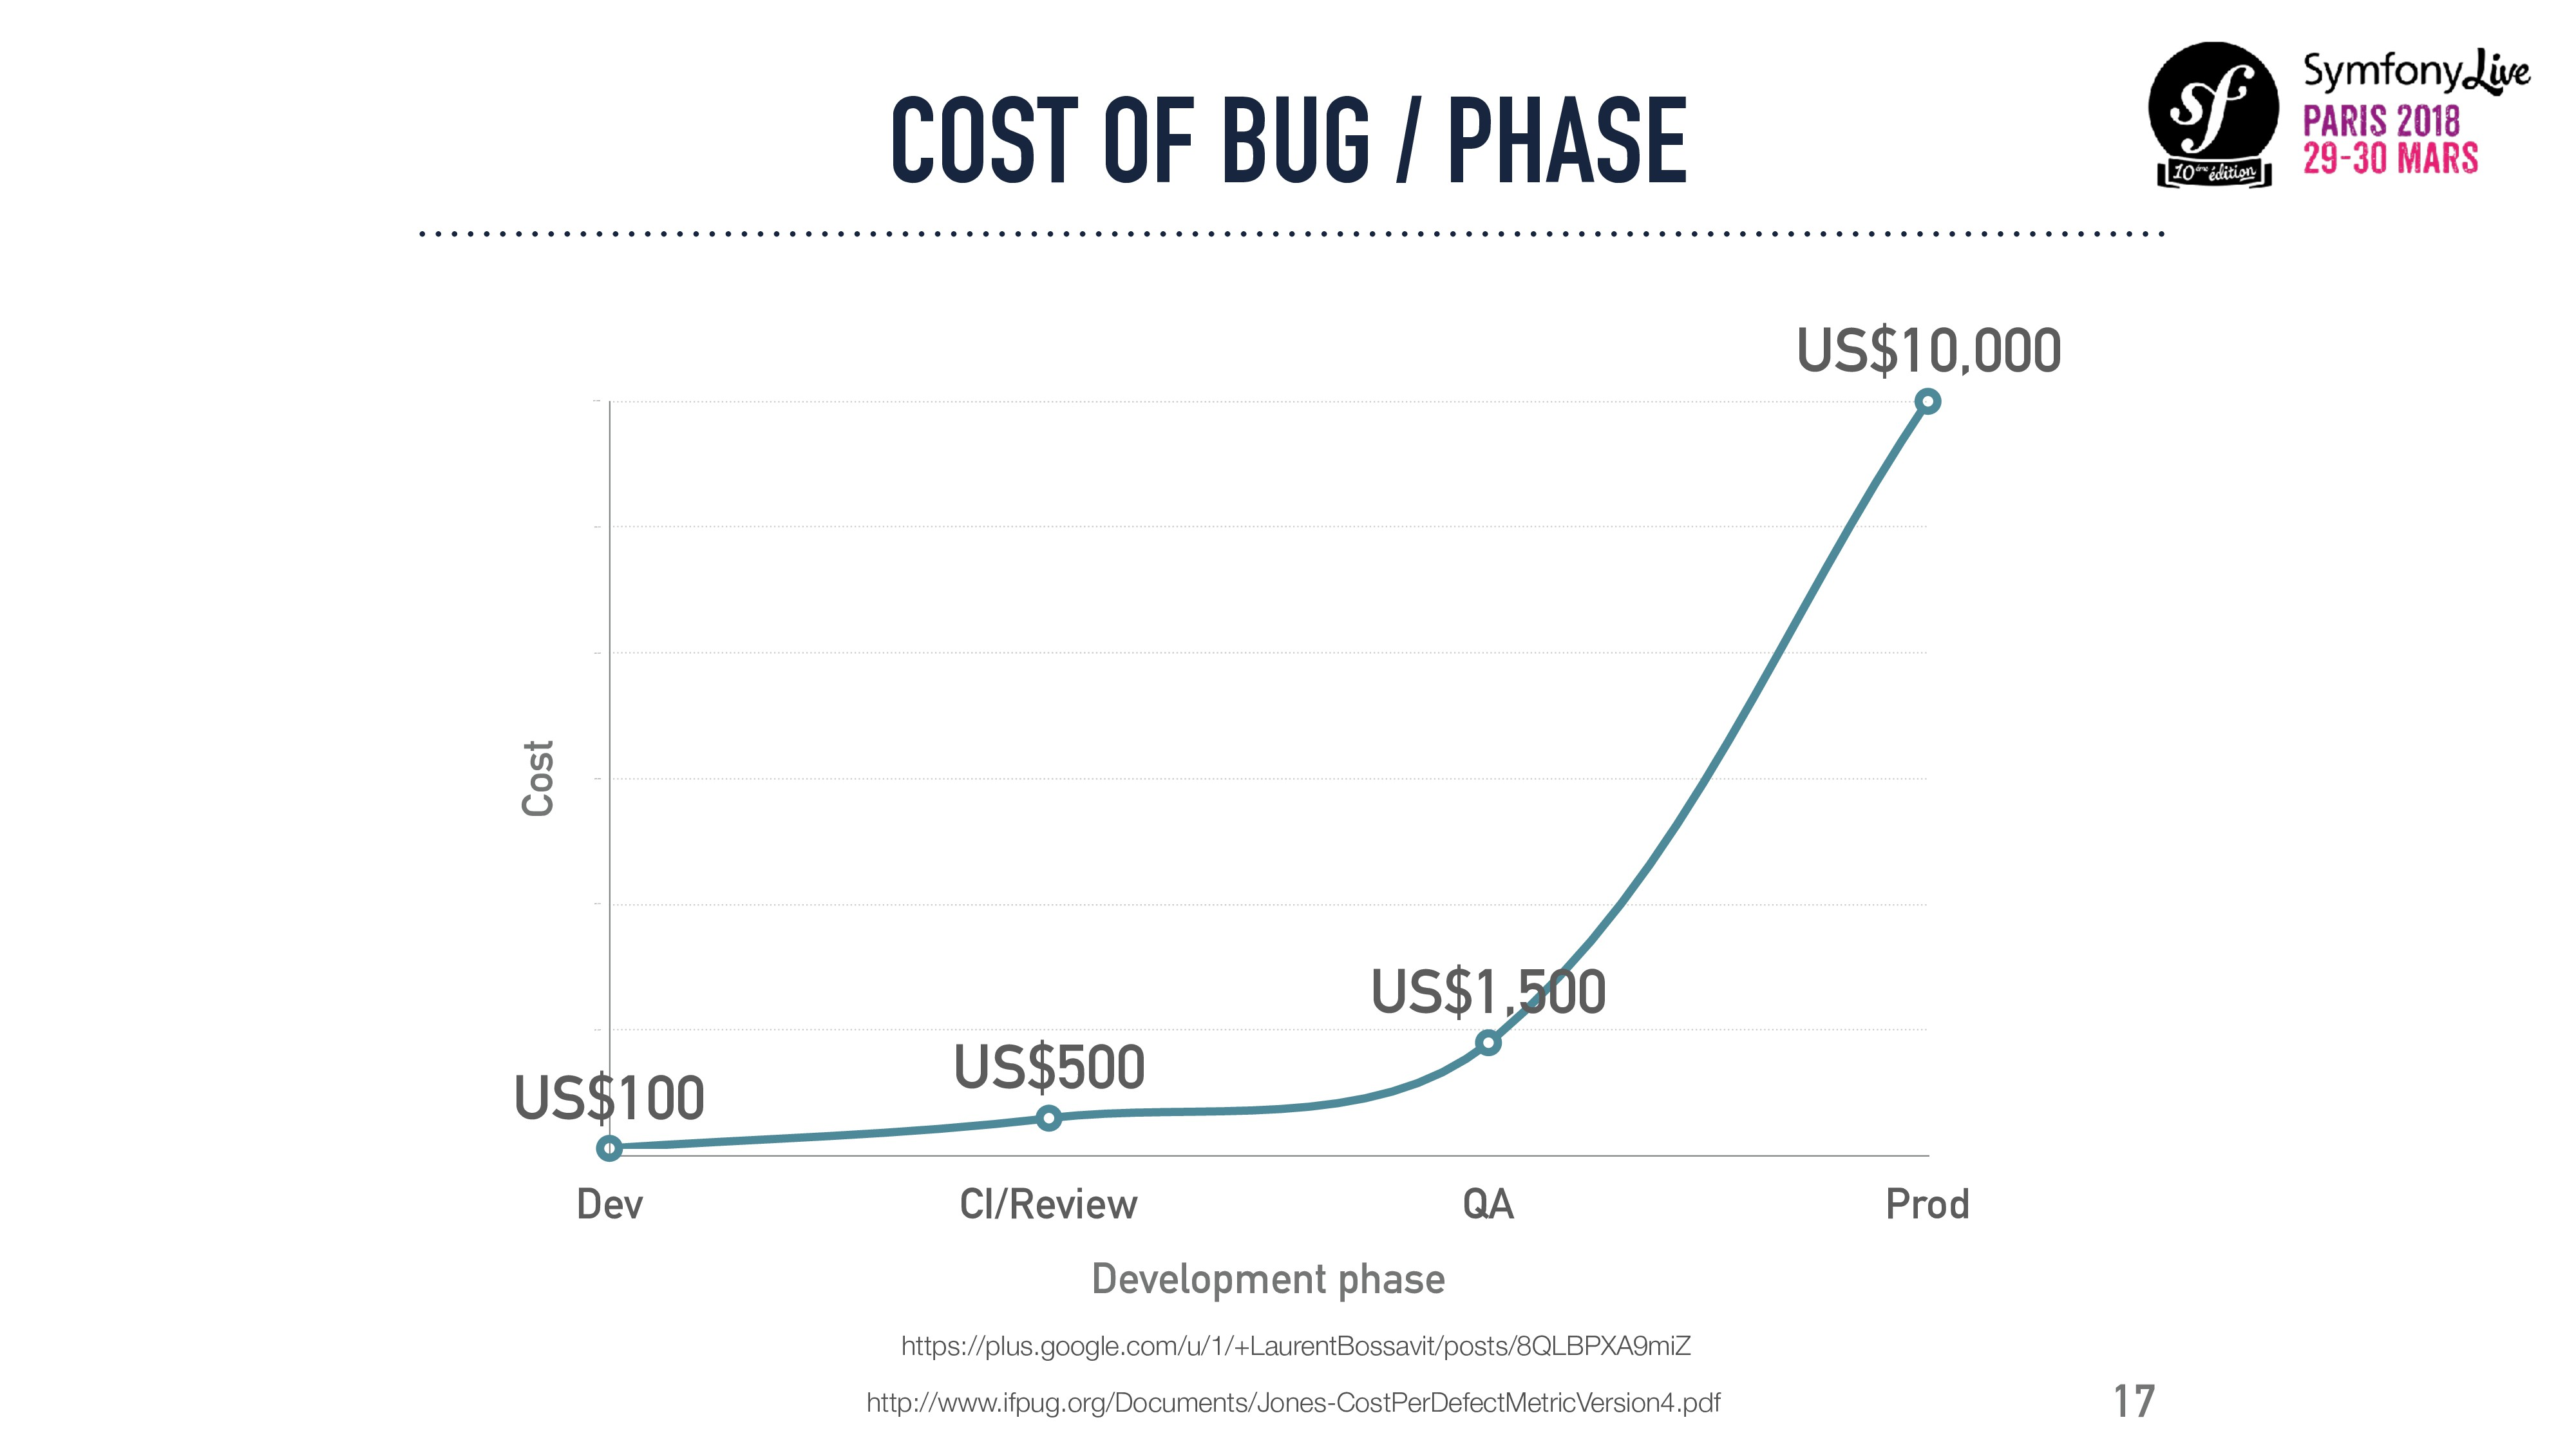 COST OF BUG / PHASE 17 http://www.ifpug.org/Doc...